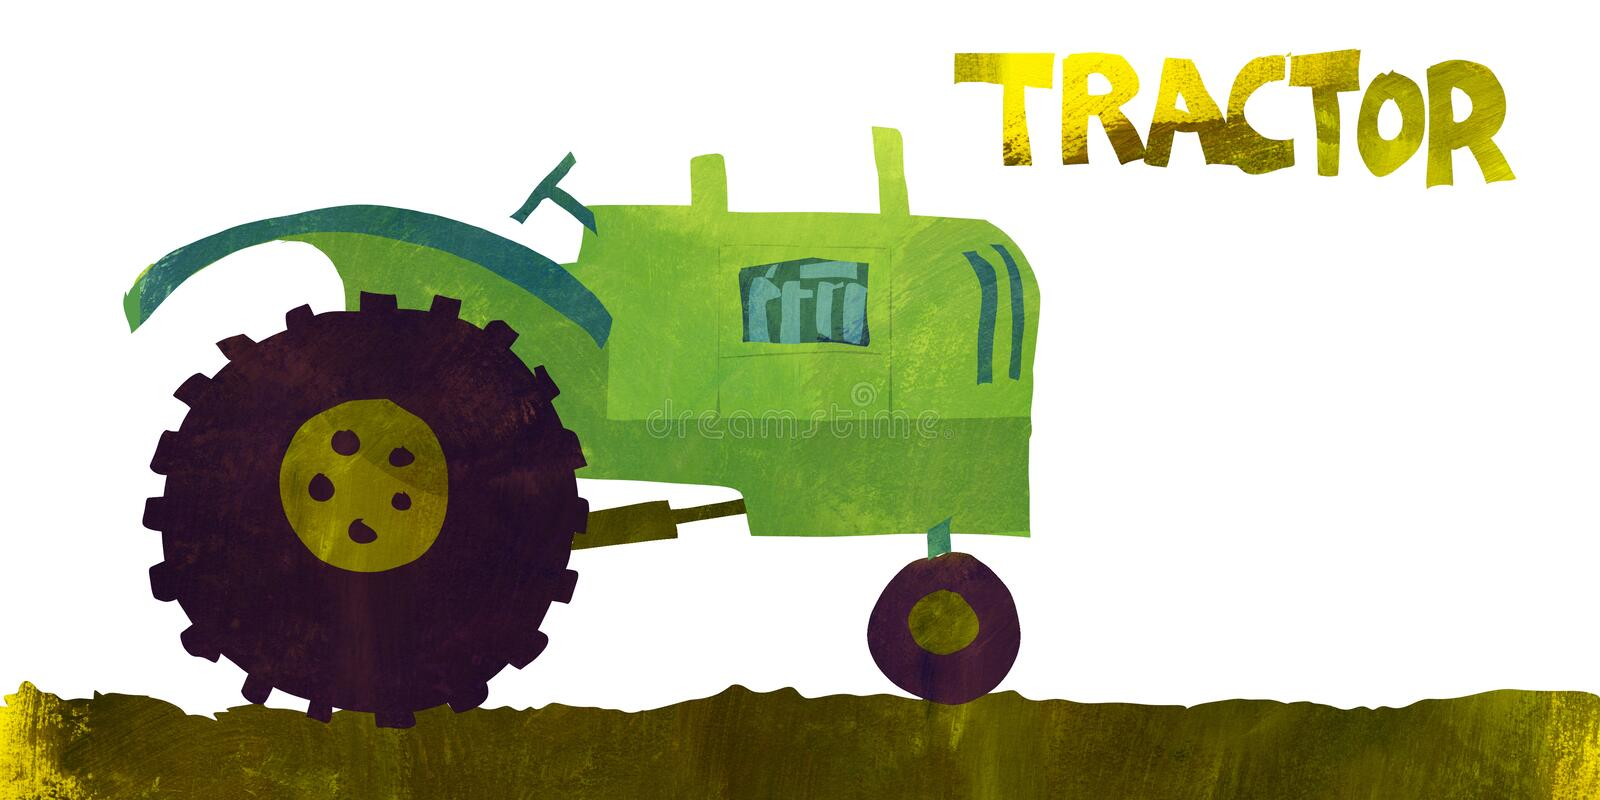 Tracteur de ferme illustration libre de droits